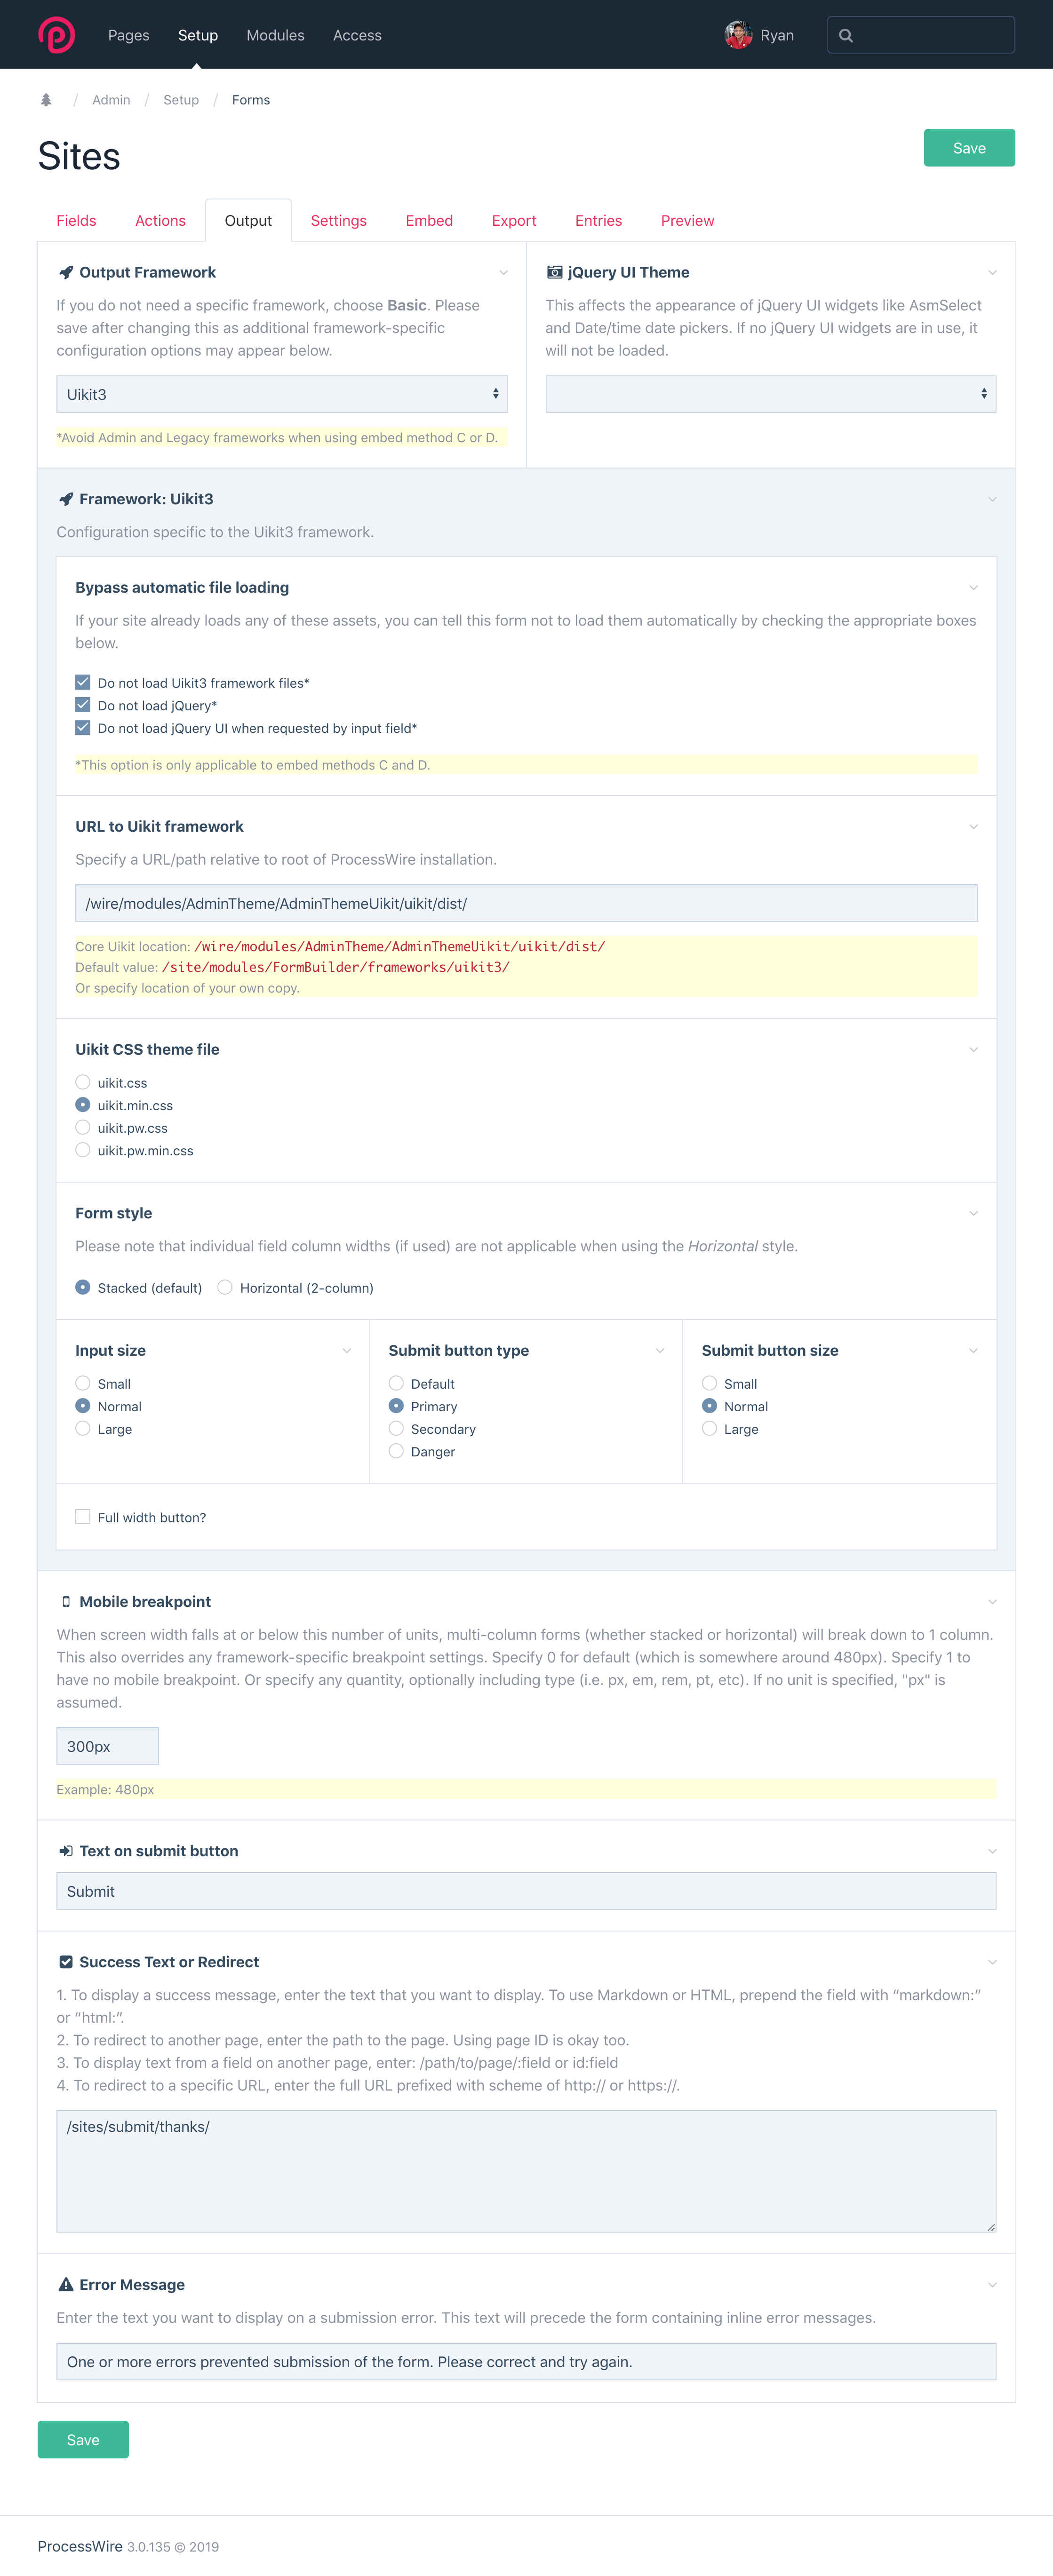 FormBuilder: ProcessWire form builder tool for creating forms